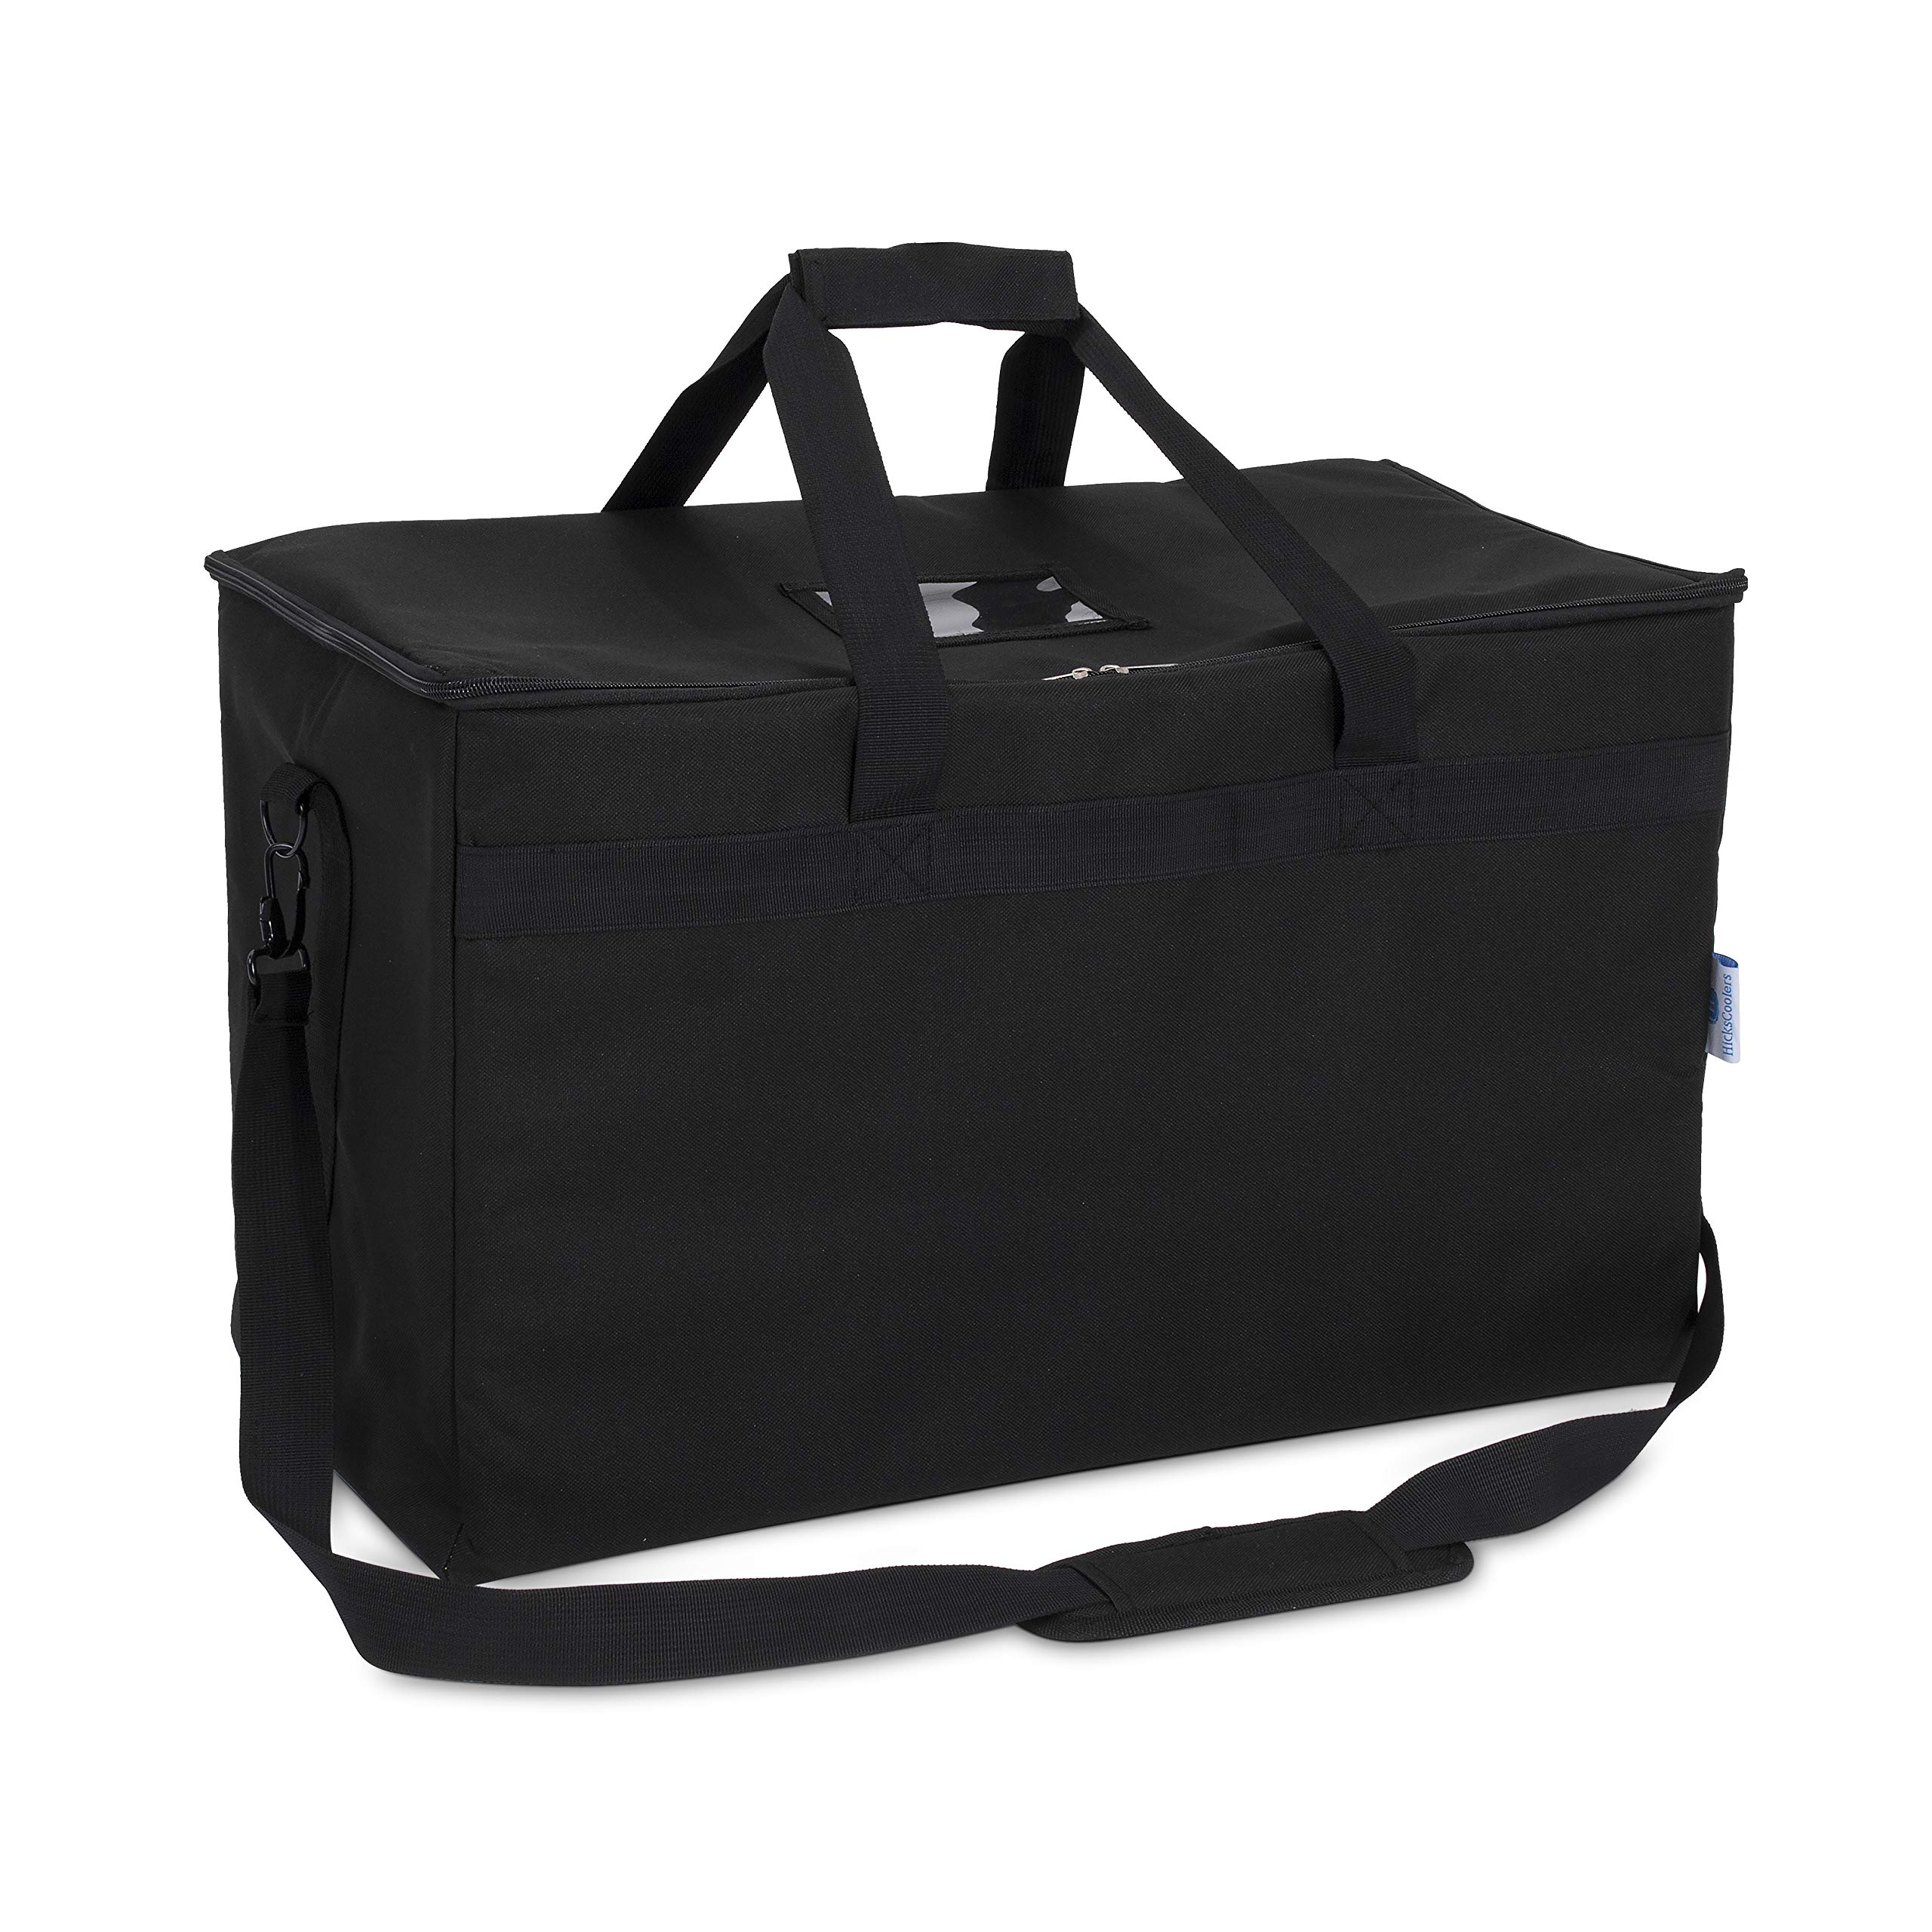 Commercial Quality Insulated Food Delivery Bag- Large 23'' x 13'' x 15'', Thick Thermal Insulation, Extra Strength Zippers, by HicksCoolers (Black) by HicksCoolers